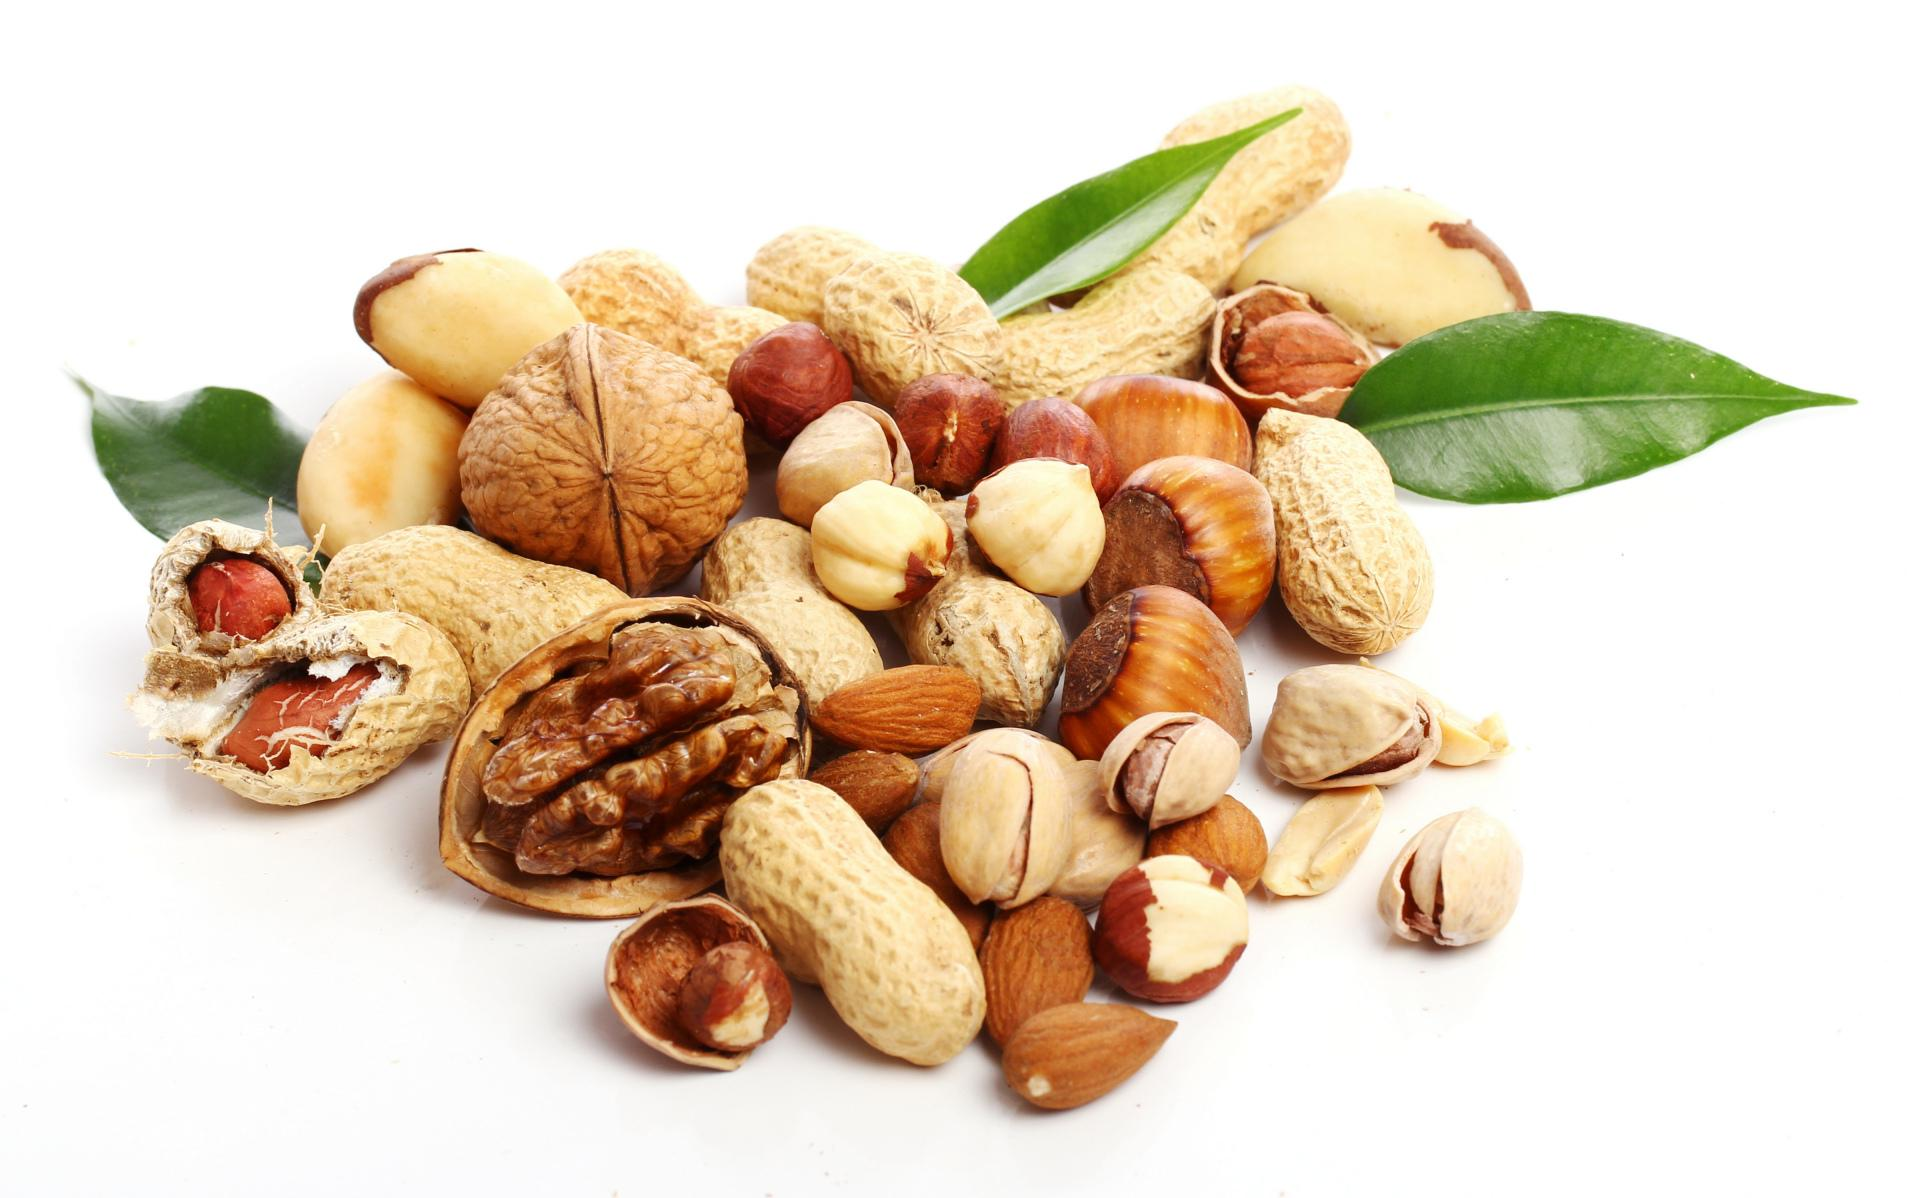 Nut wallpapers HD quality